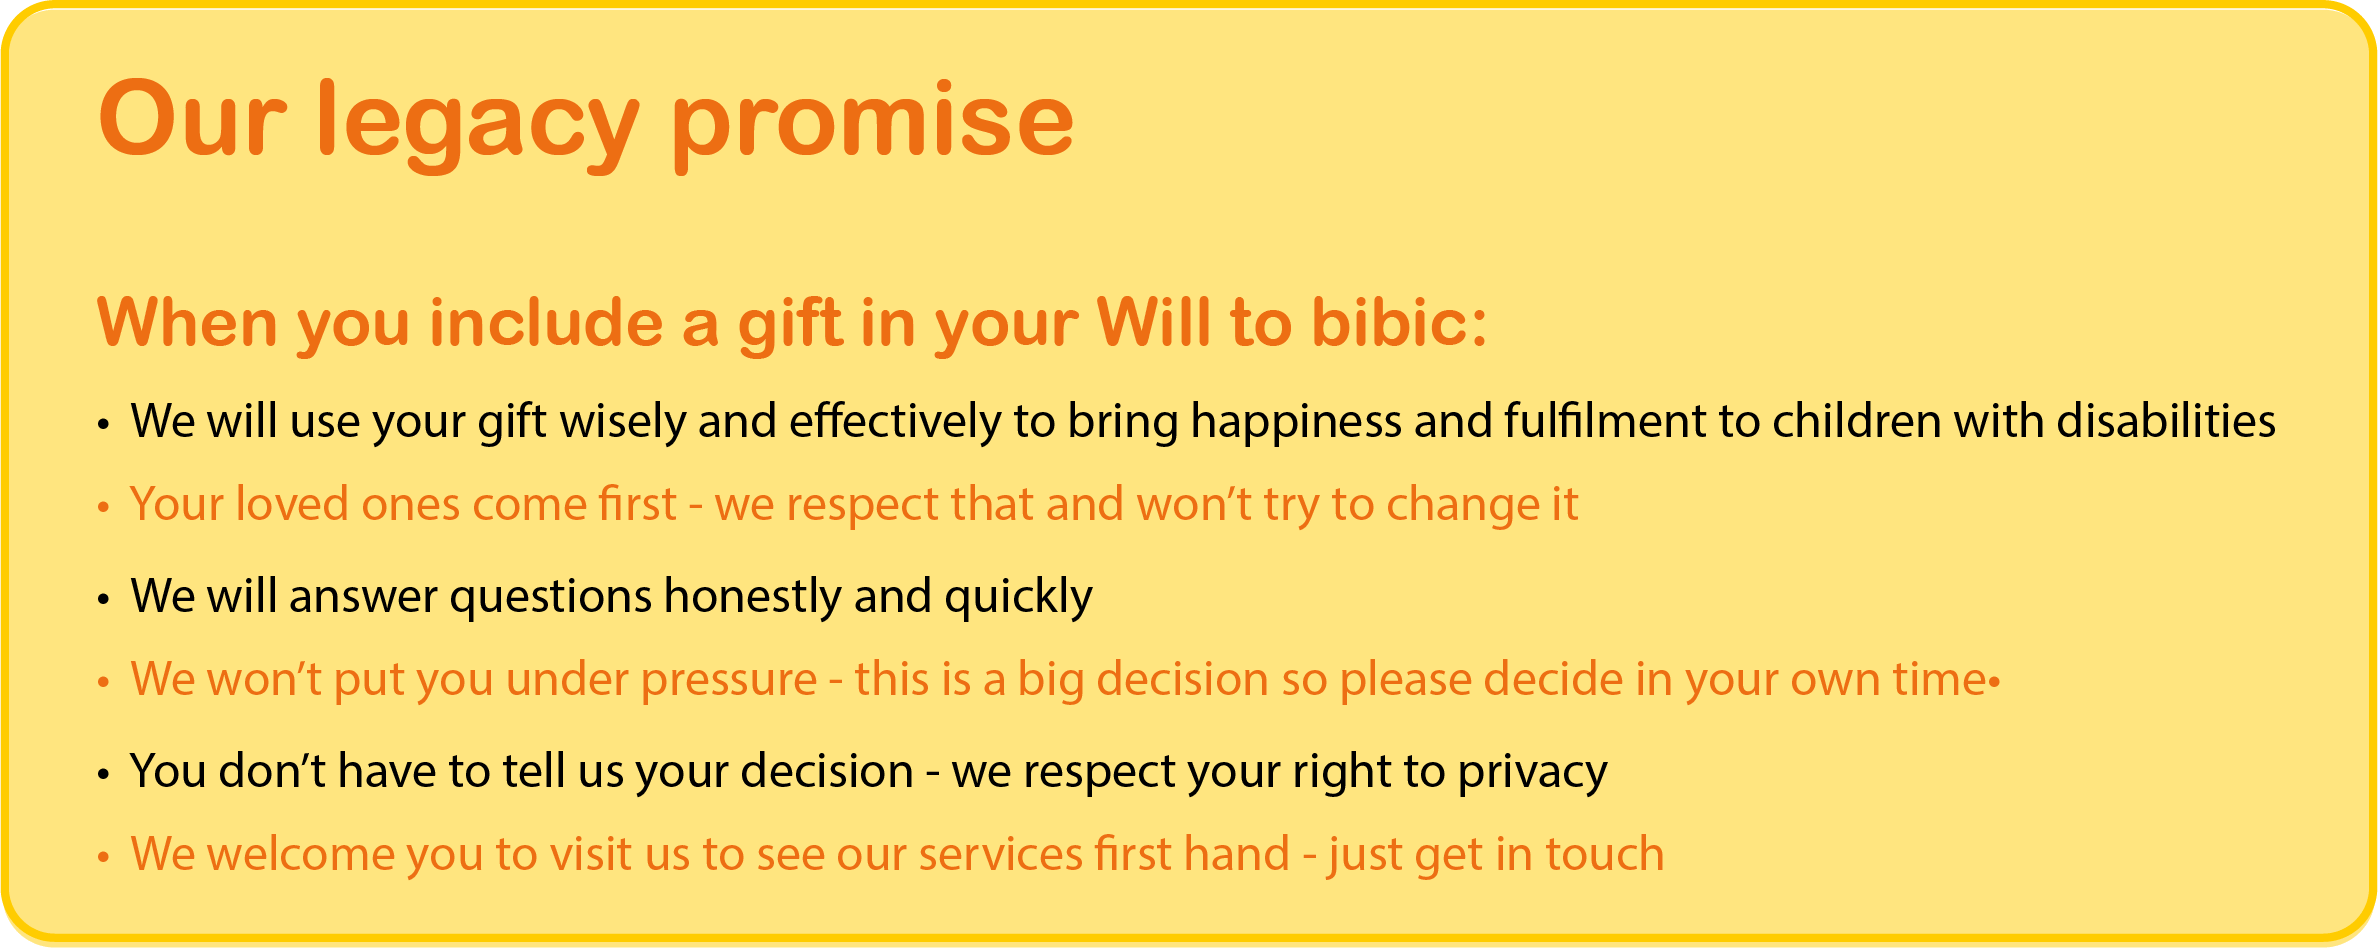 Legacy promise